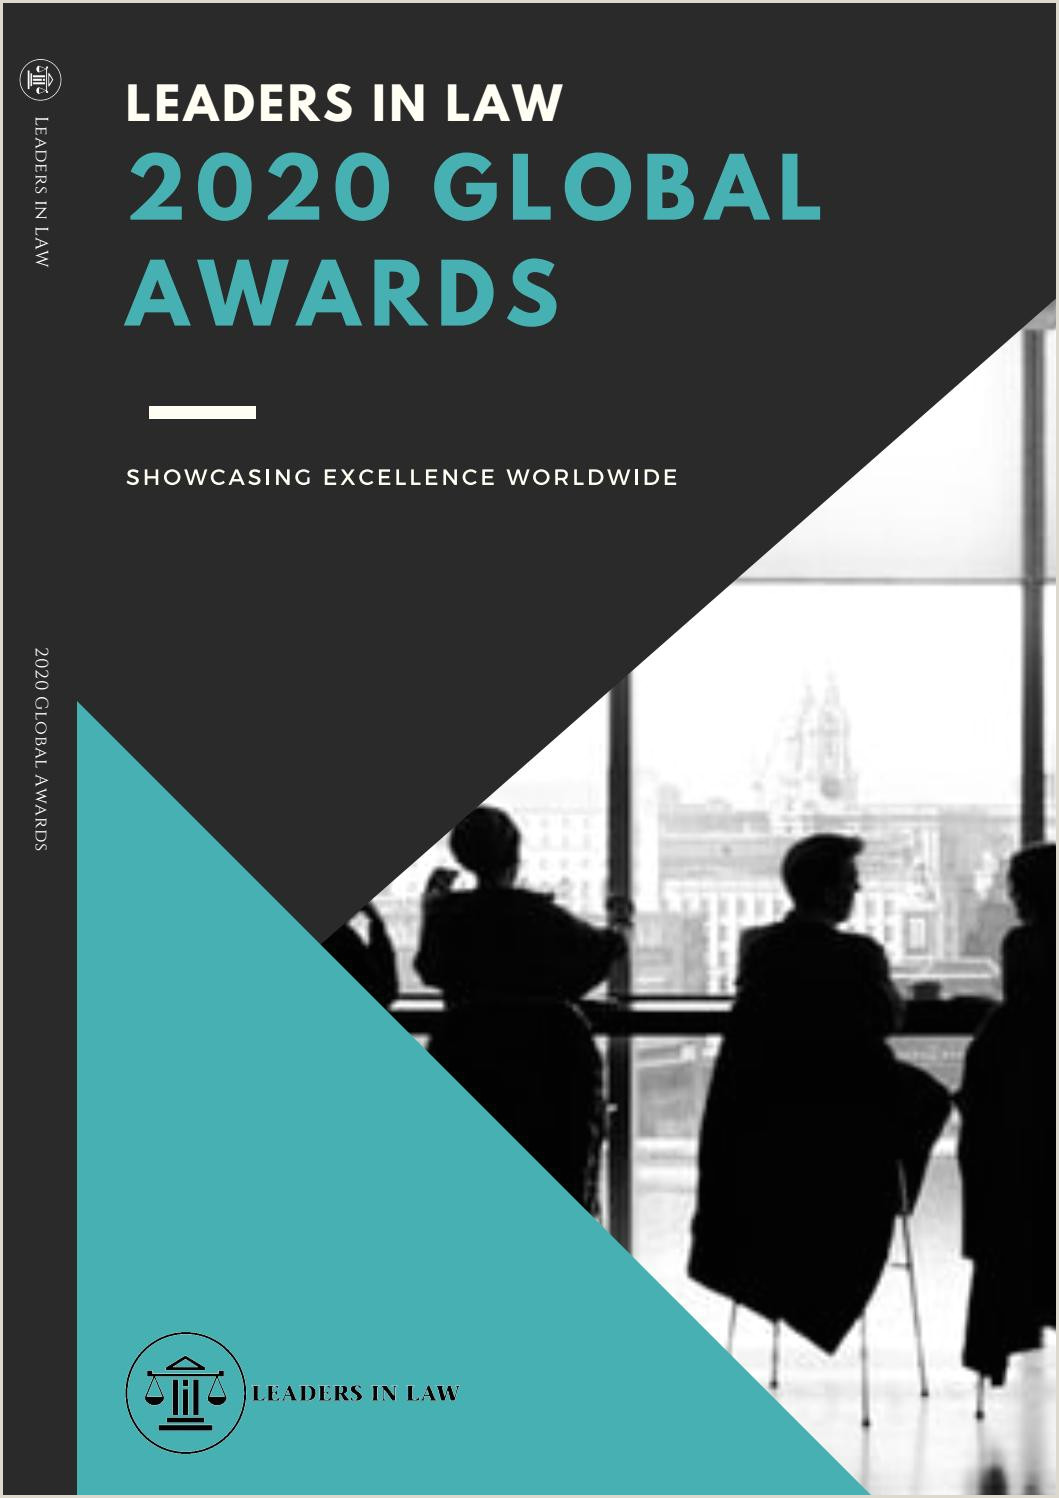 Best Business Cards For Meditors Attorneys Leaders In Law 2020 Global Awards By Leaders In Law Issuu